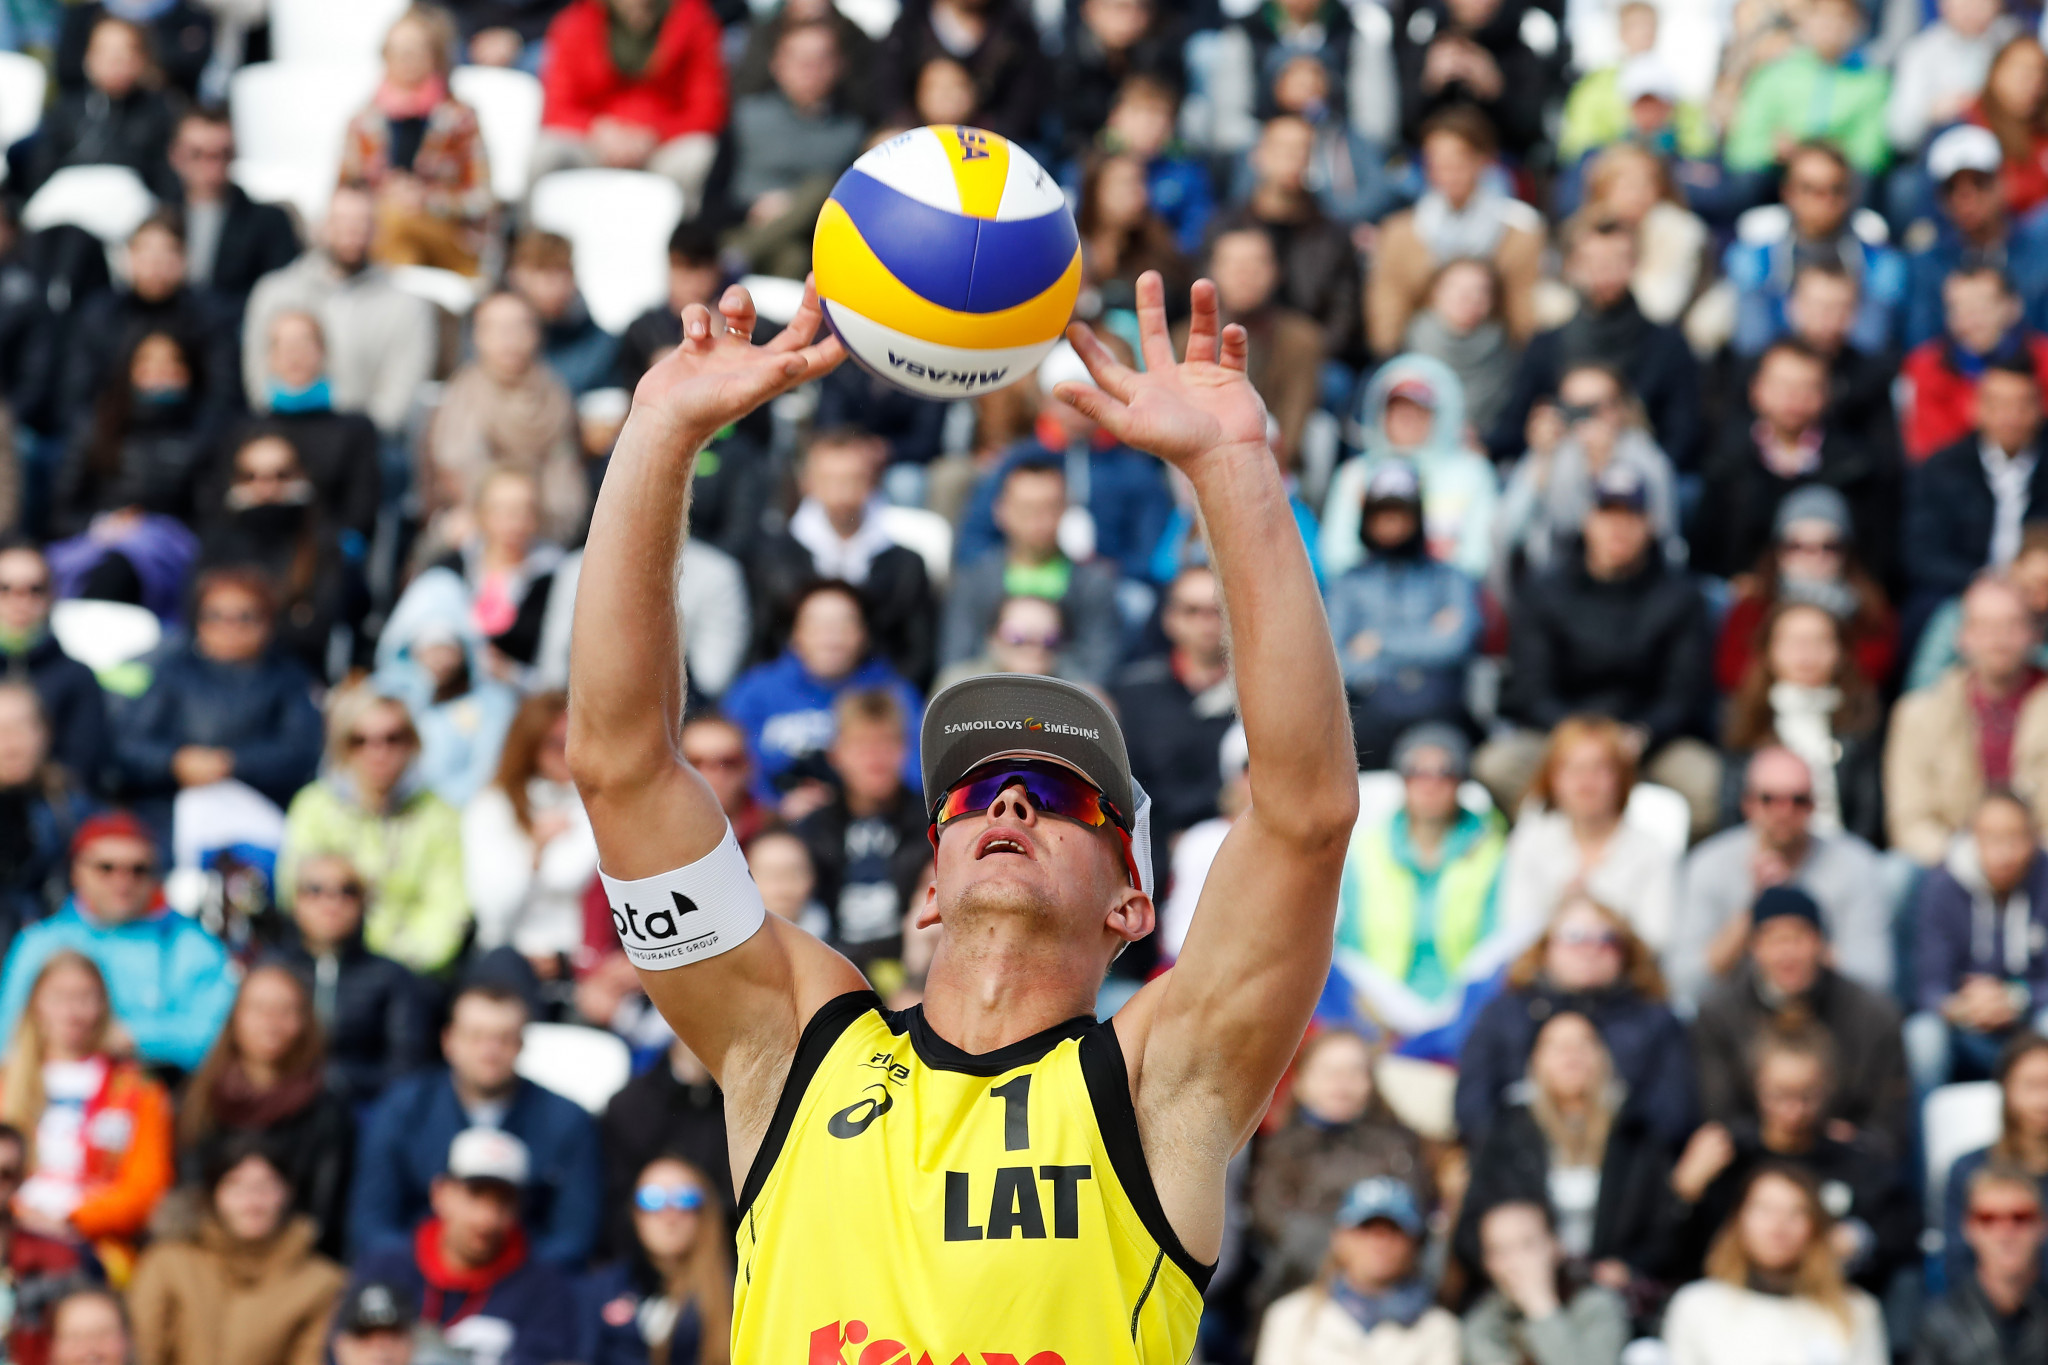 Olympic bronze medallist among field as FIVB Beach World Tour returns to Iran